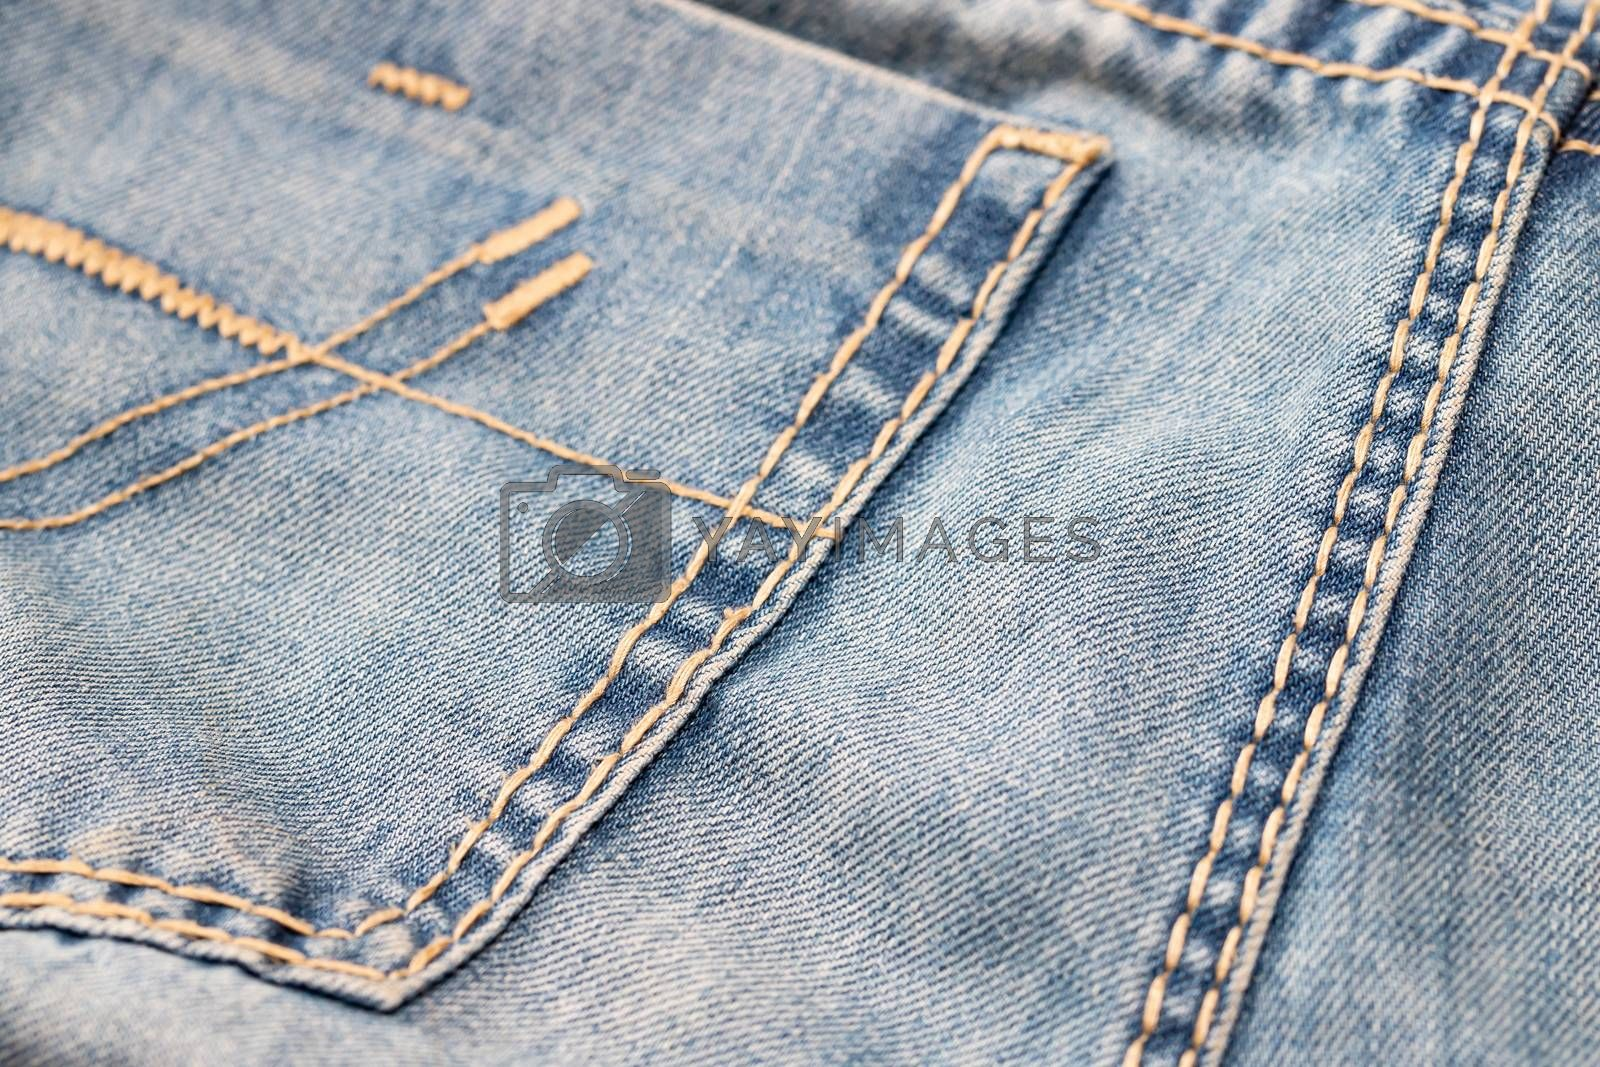 Close-up of blue denim texture. Denim jeans background, space to copy your design or text.